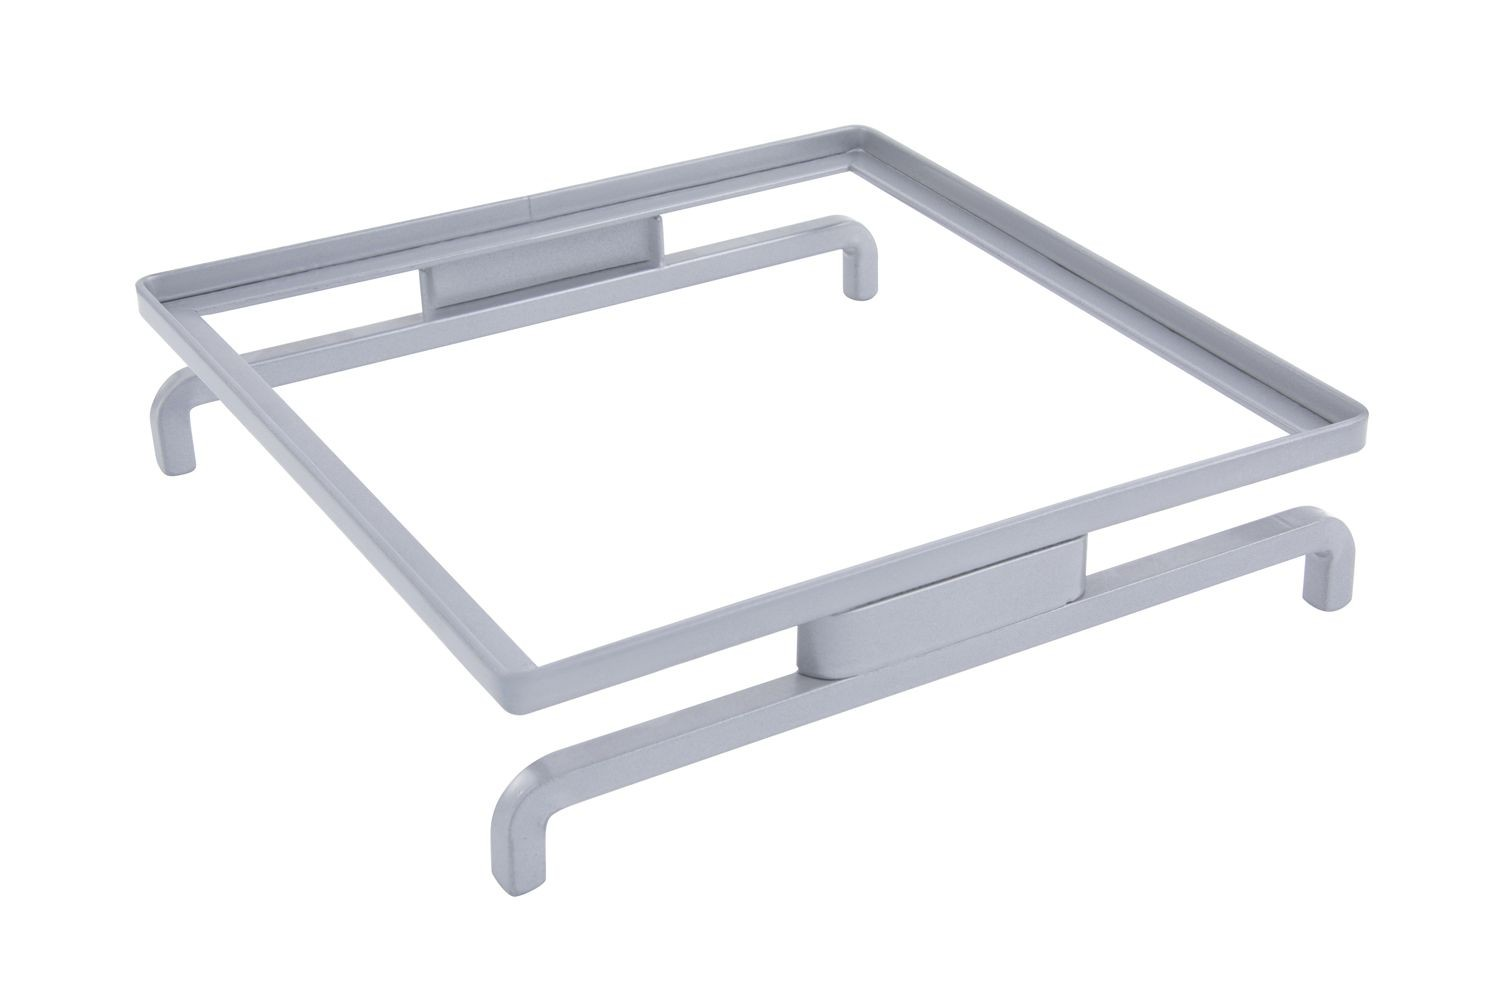 """Bon Chef 7013SS Stainless Steel Stand, 10 1/4"""" x 10 1/4"""" x 2 5/"""", Set of 6"""